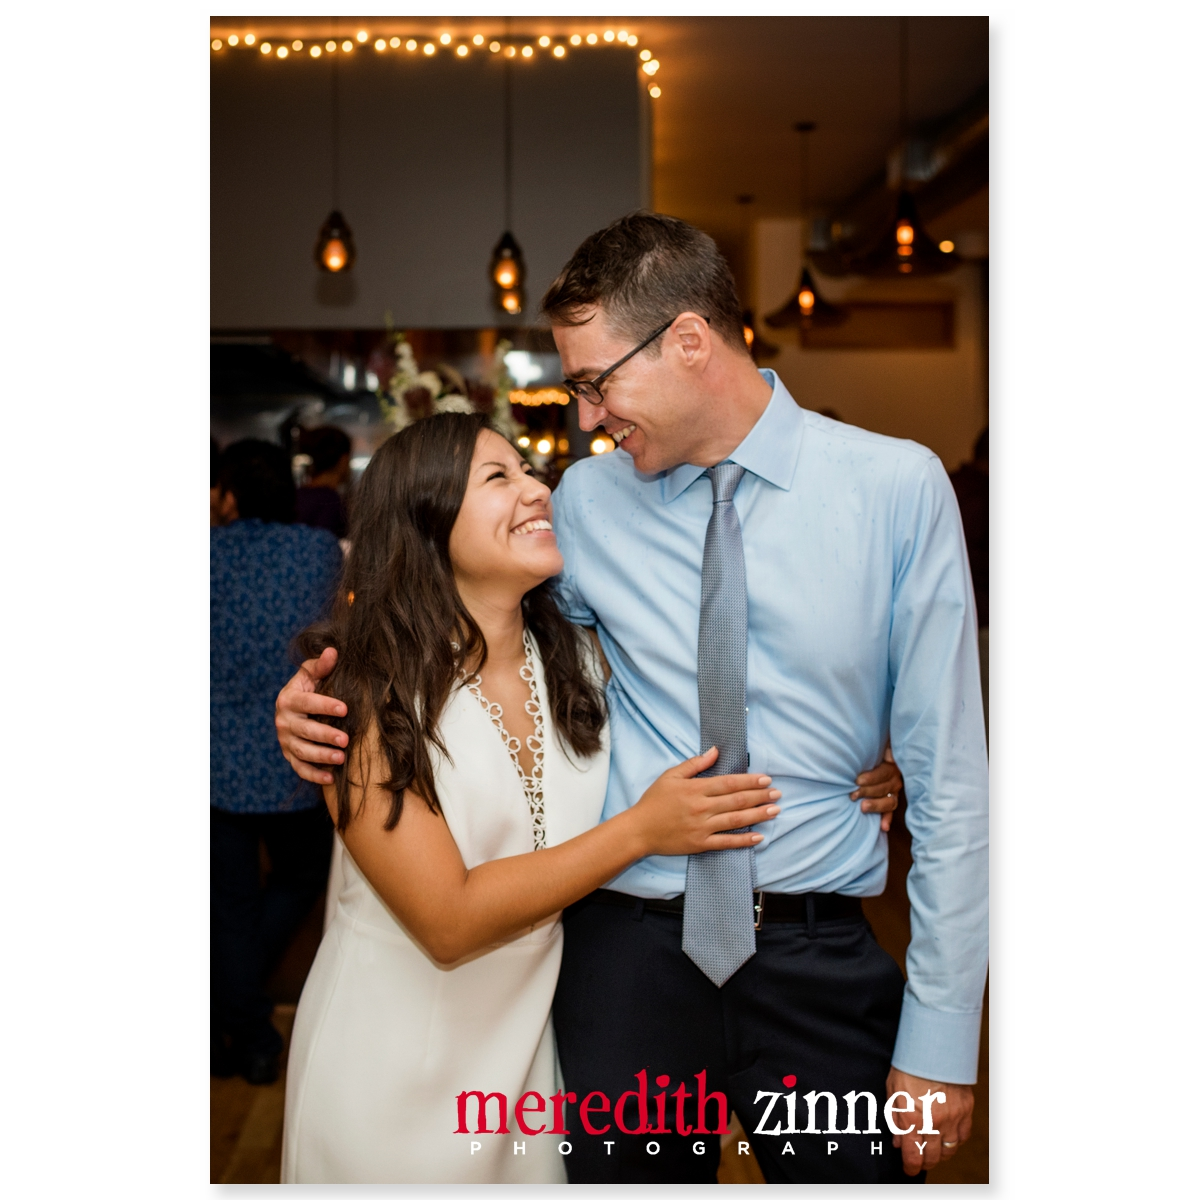 Meredith_Zinner_Photography_StilesCelebration_0457